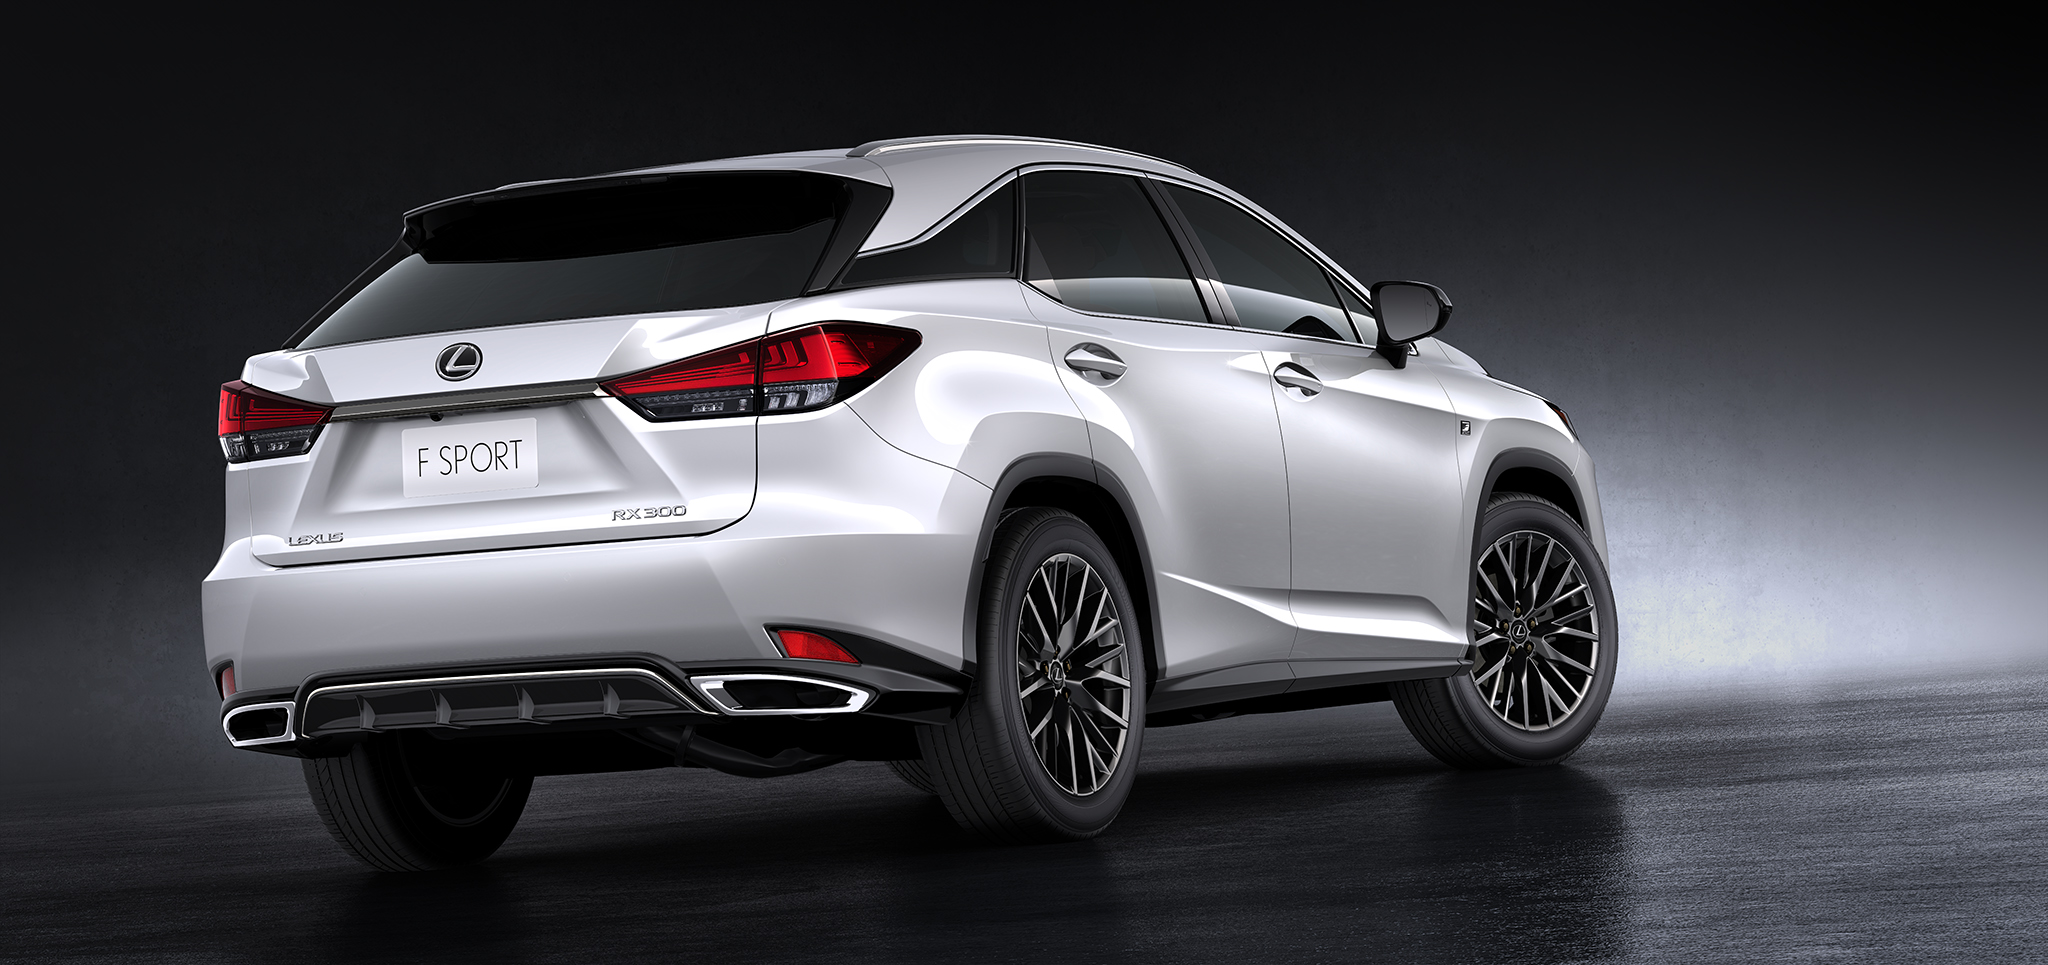 Lexus F Series >> The New Lexus Rx 300 Series Suv Crossover Terbaru Dari